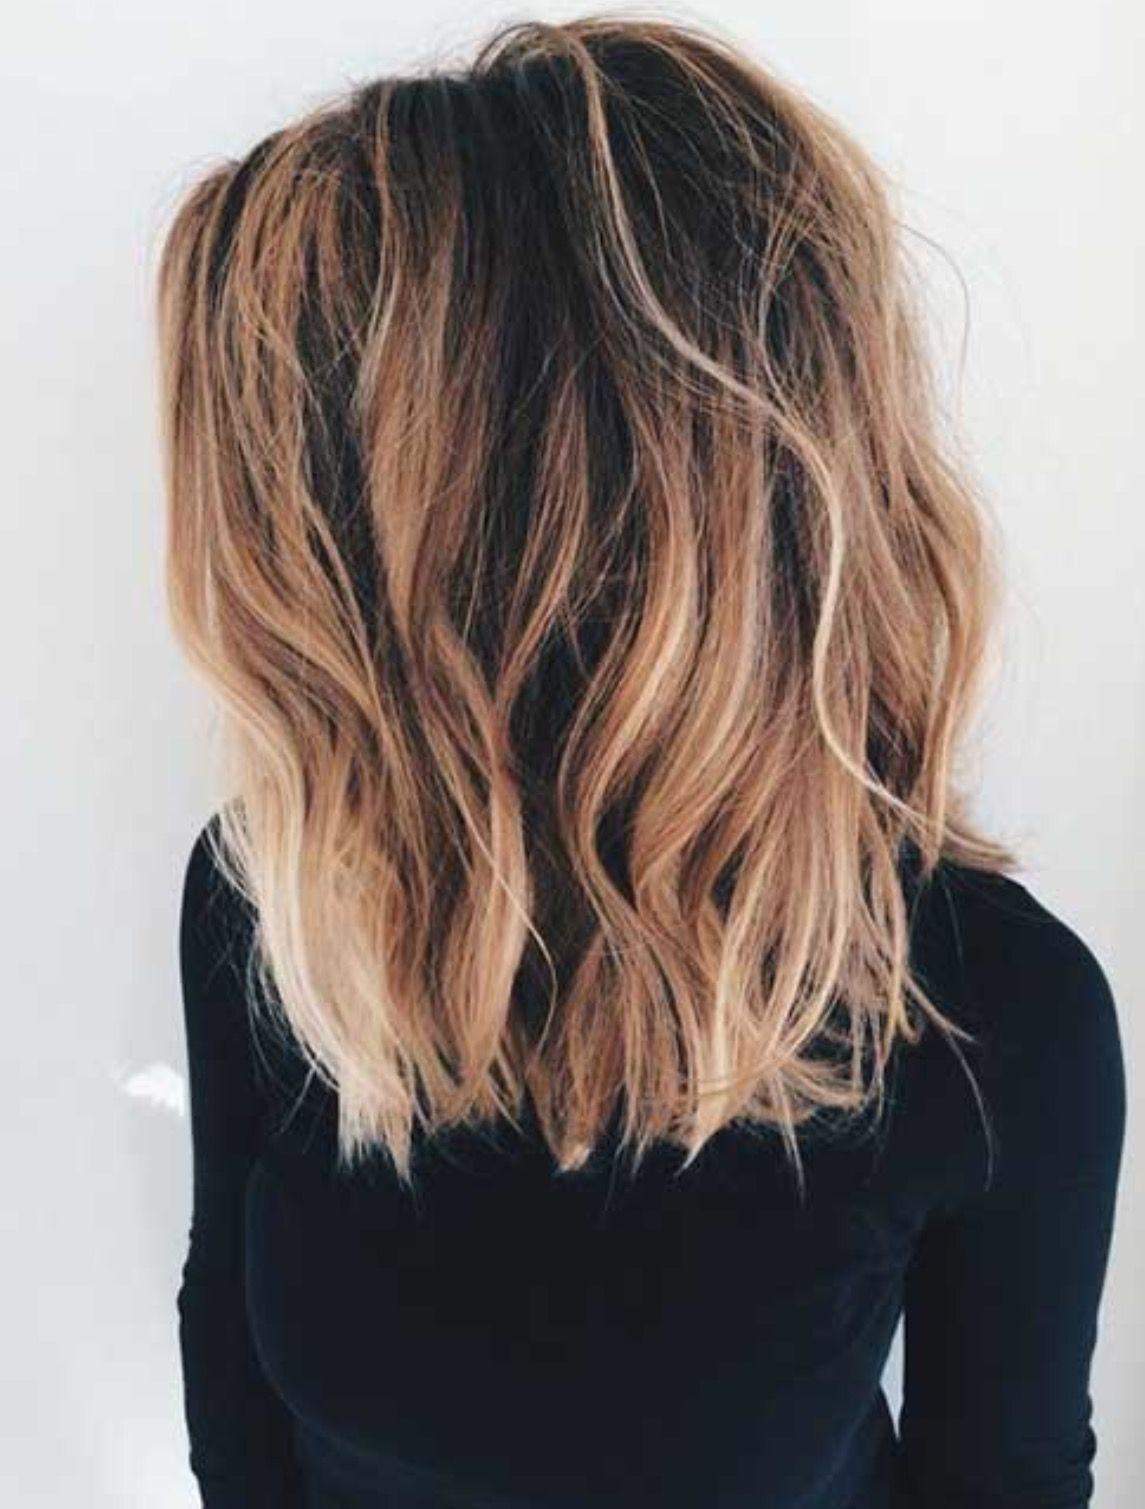 Long Bob With Long Layers Dark Brown Roots With Caramel And Blonde